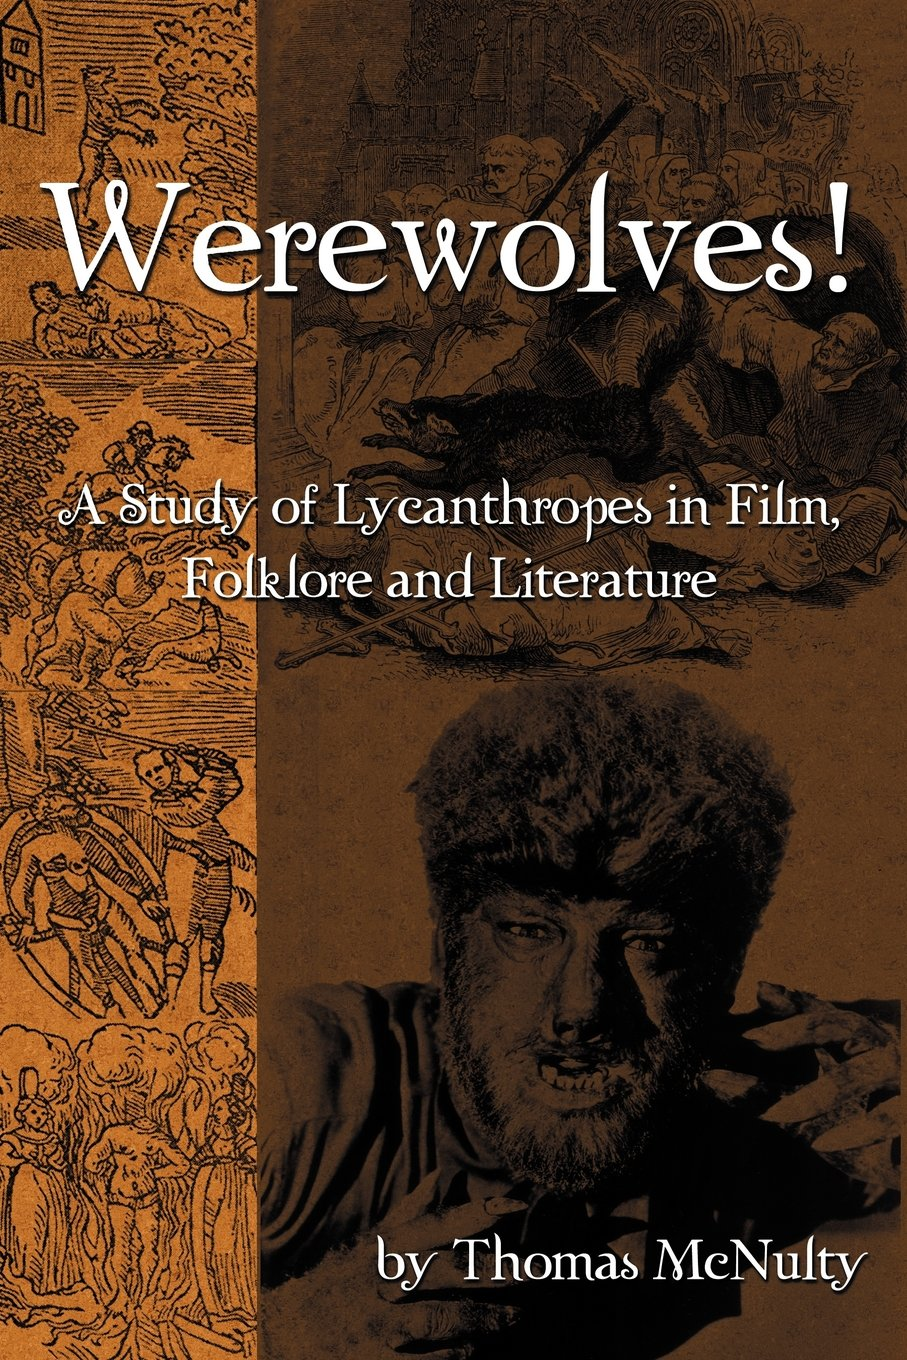 an analysis of monsters in literature and films